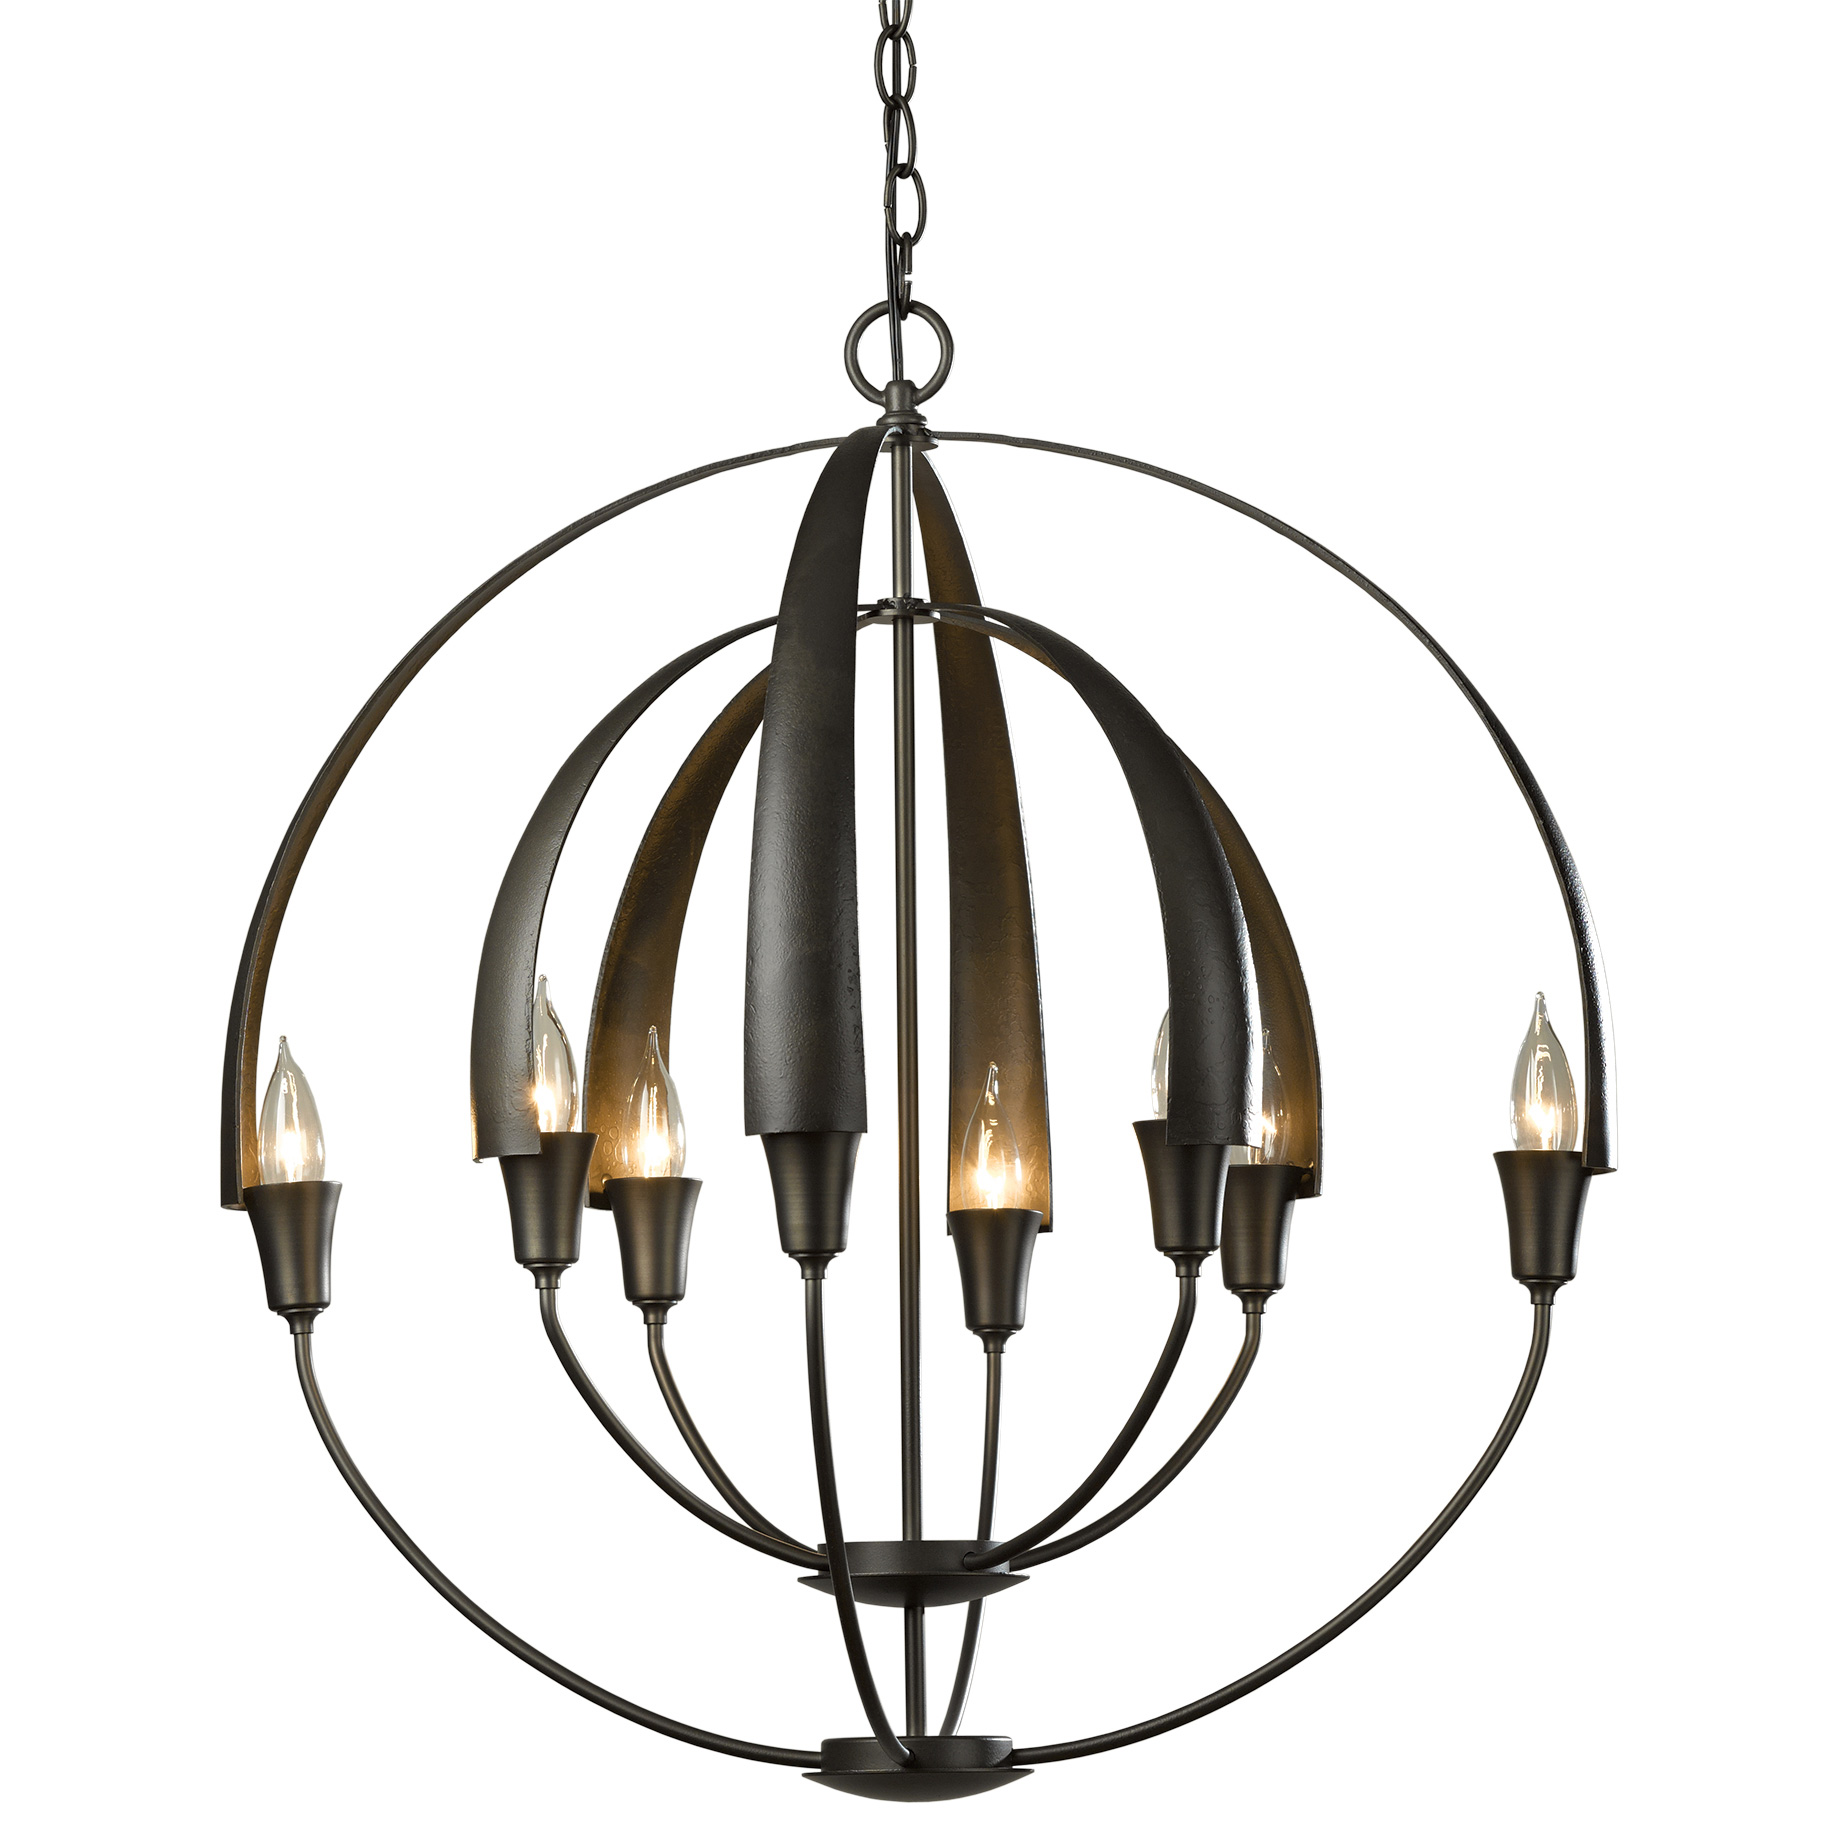 Hubbardton Forge Modern: Double Cirque Chandelier By Hubbardton Forge